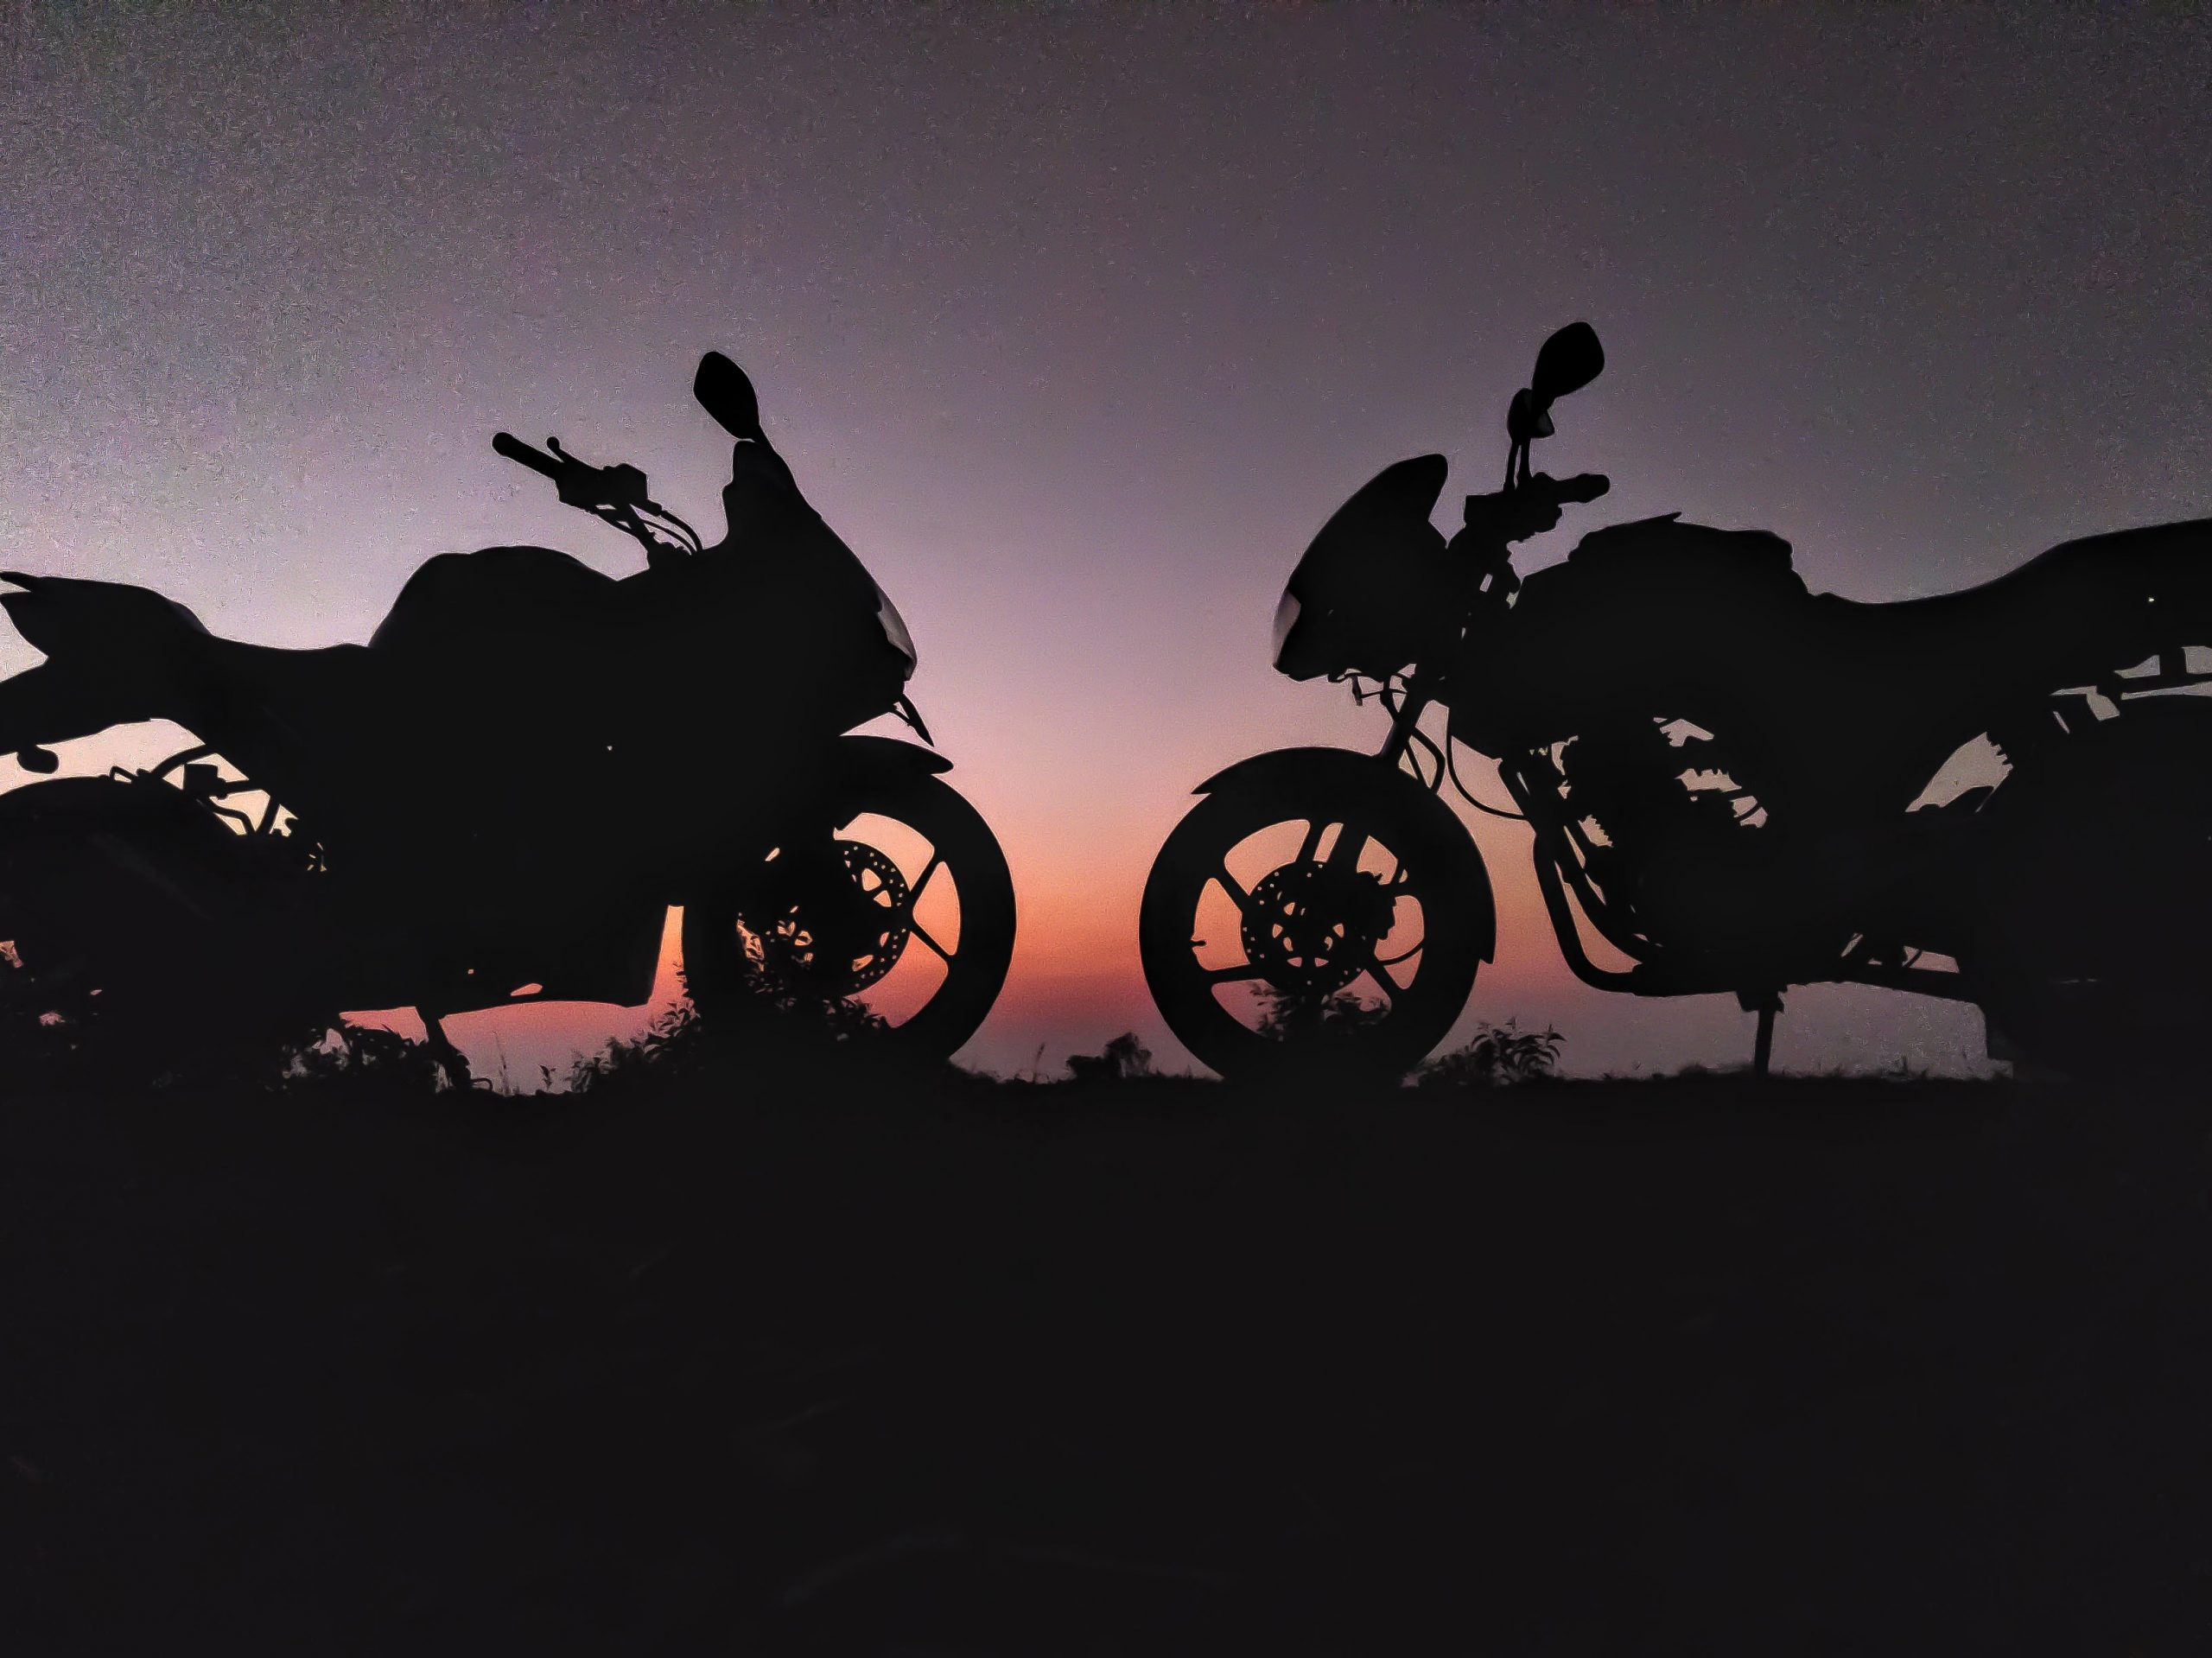 Two Motorcycle in Evening Scenery